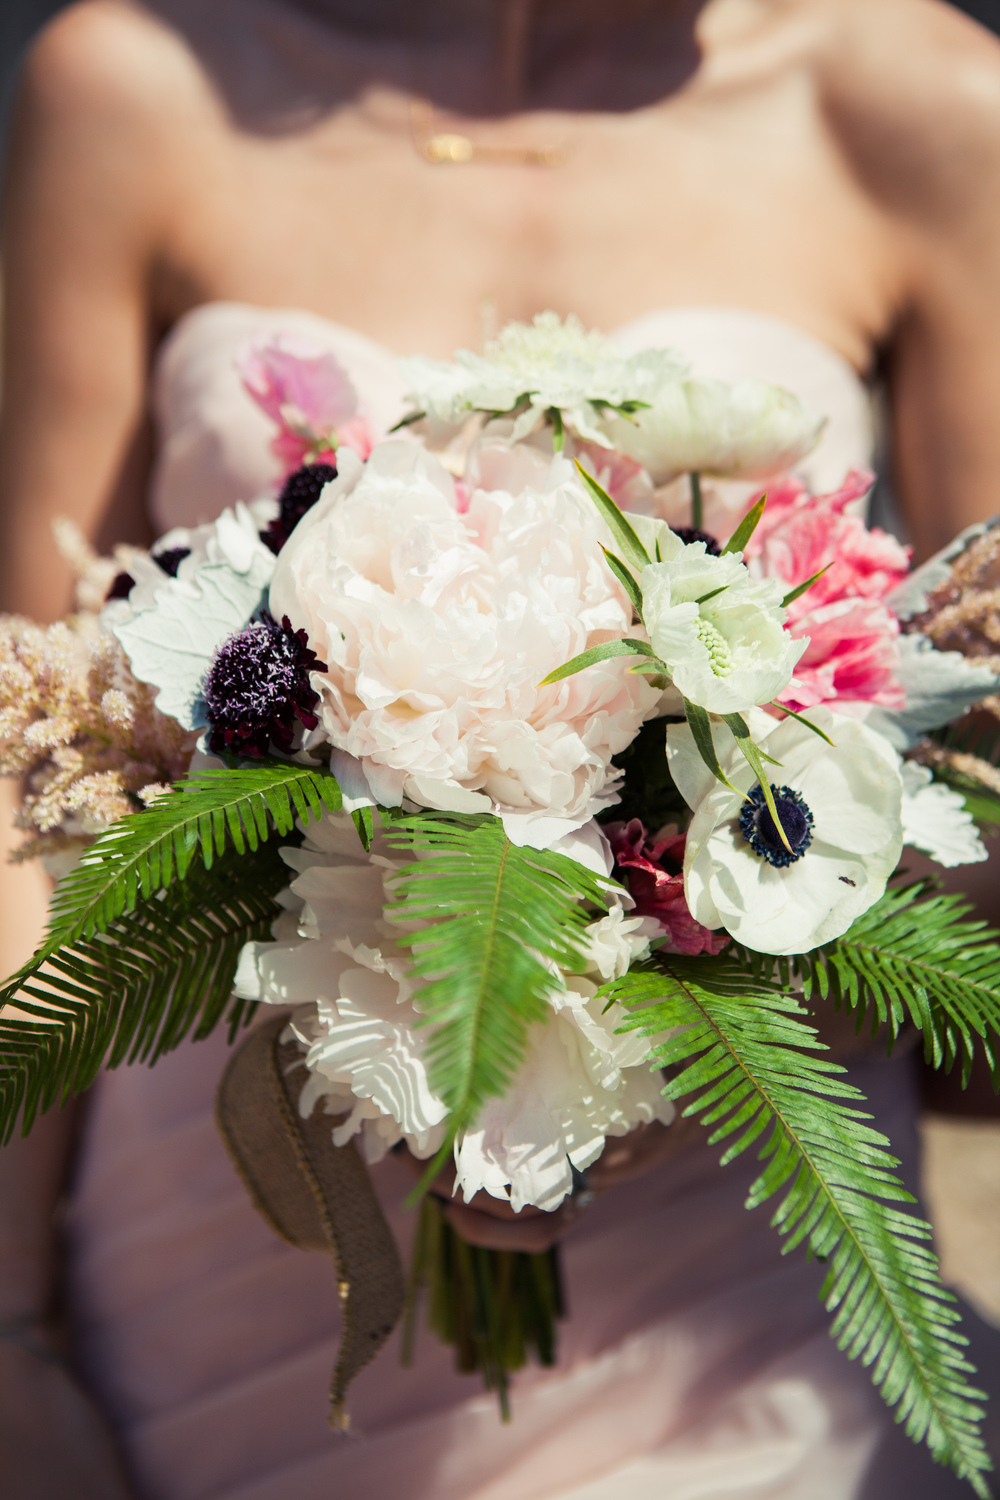 Paige-Newton-Photography-Wedding-Details-Pastel-Bouquet.jpg